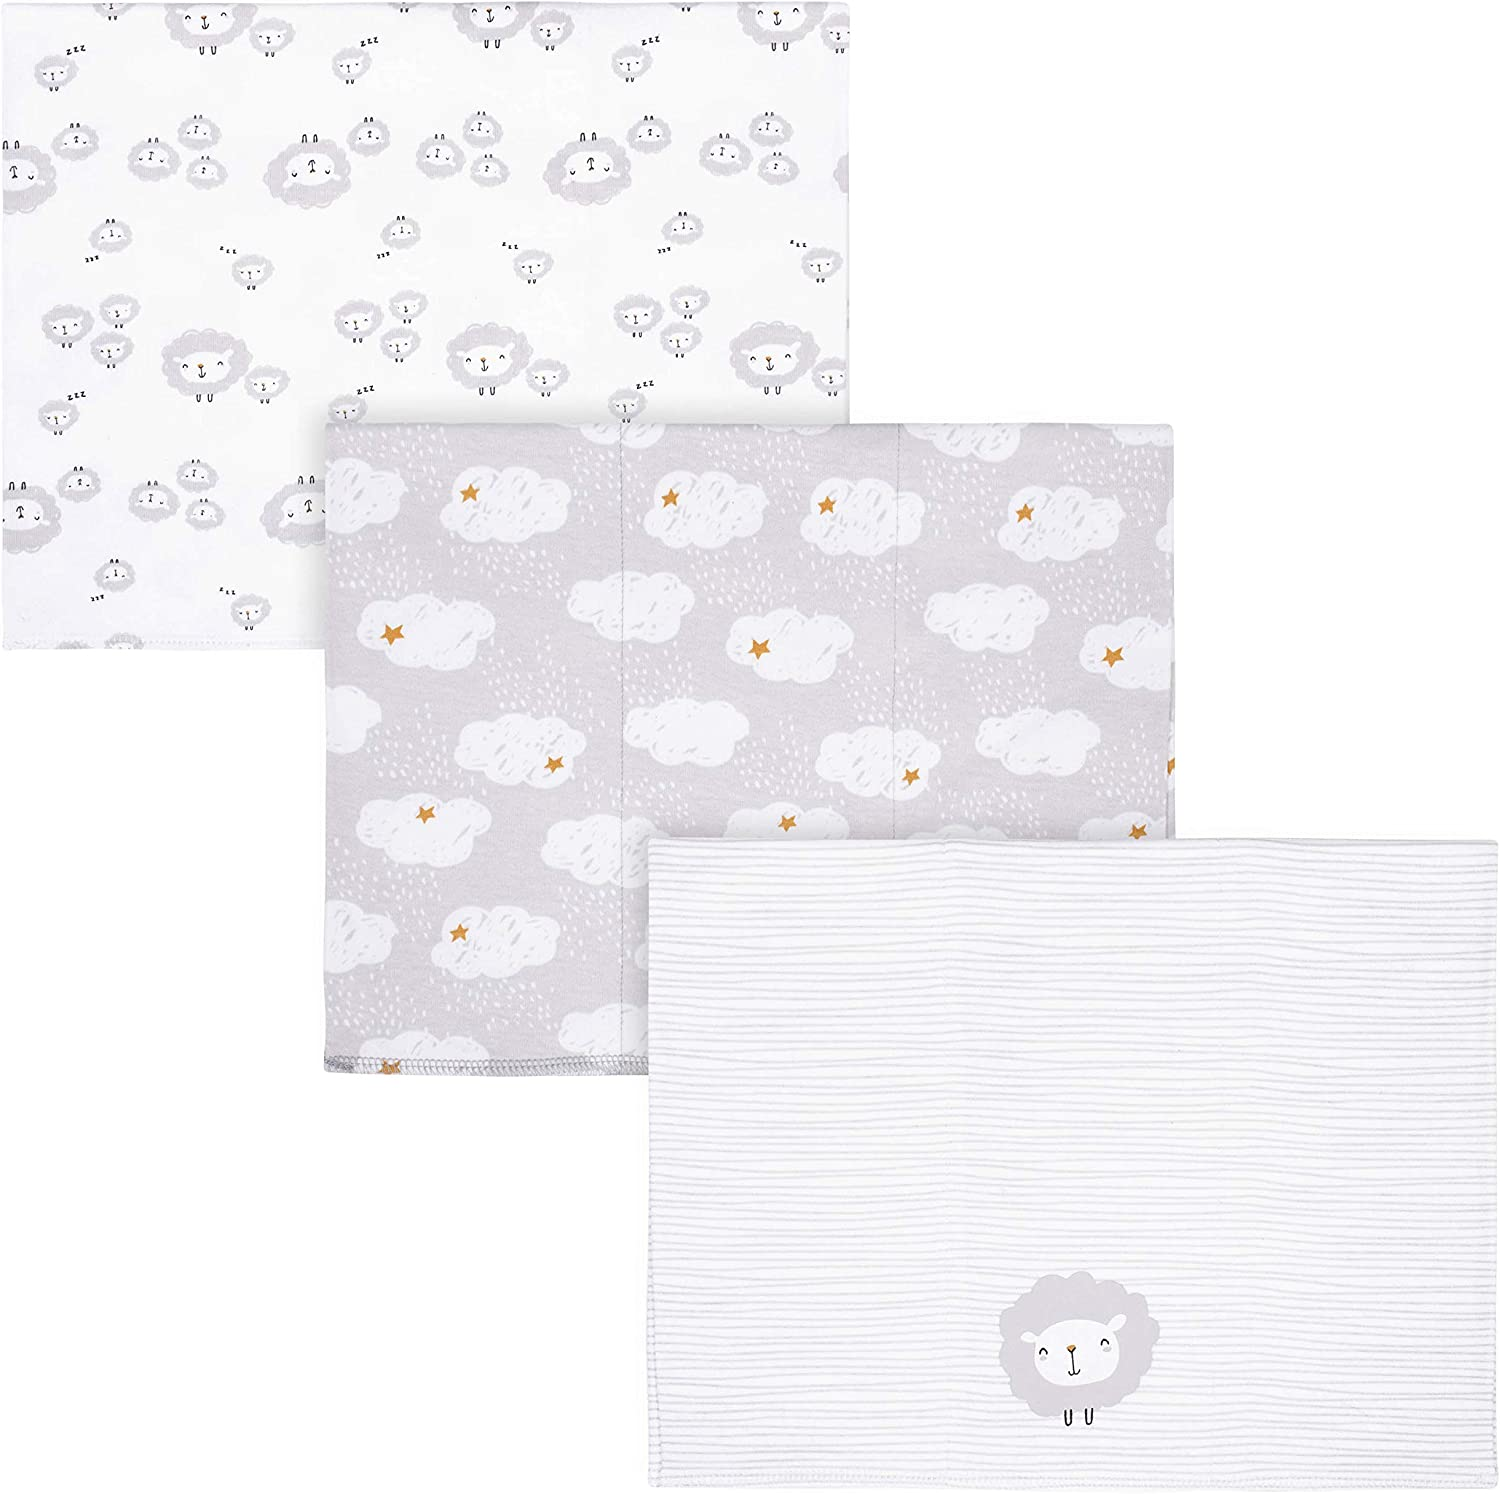 Gerber unisex baby Large-scale sale lowest price 3 Pack Knit Cloth Whi Burp Lamb Handkerchief